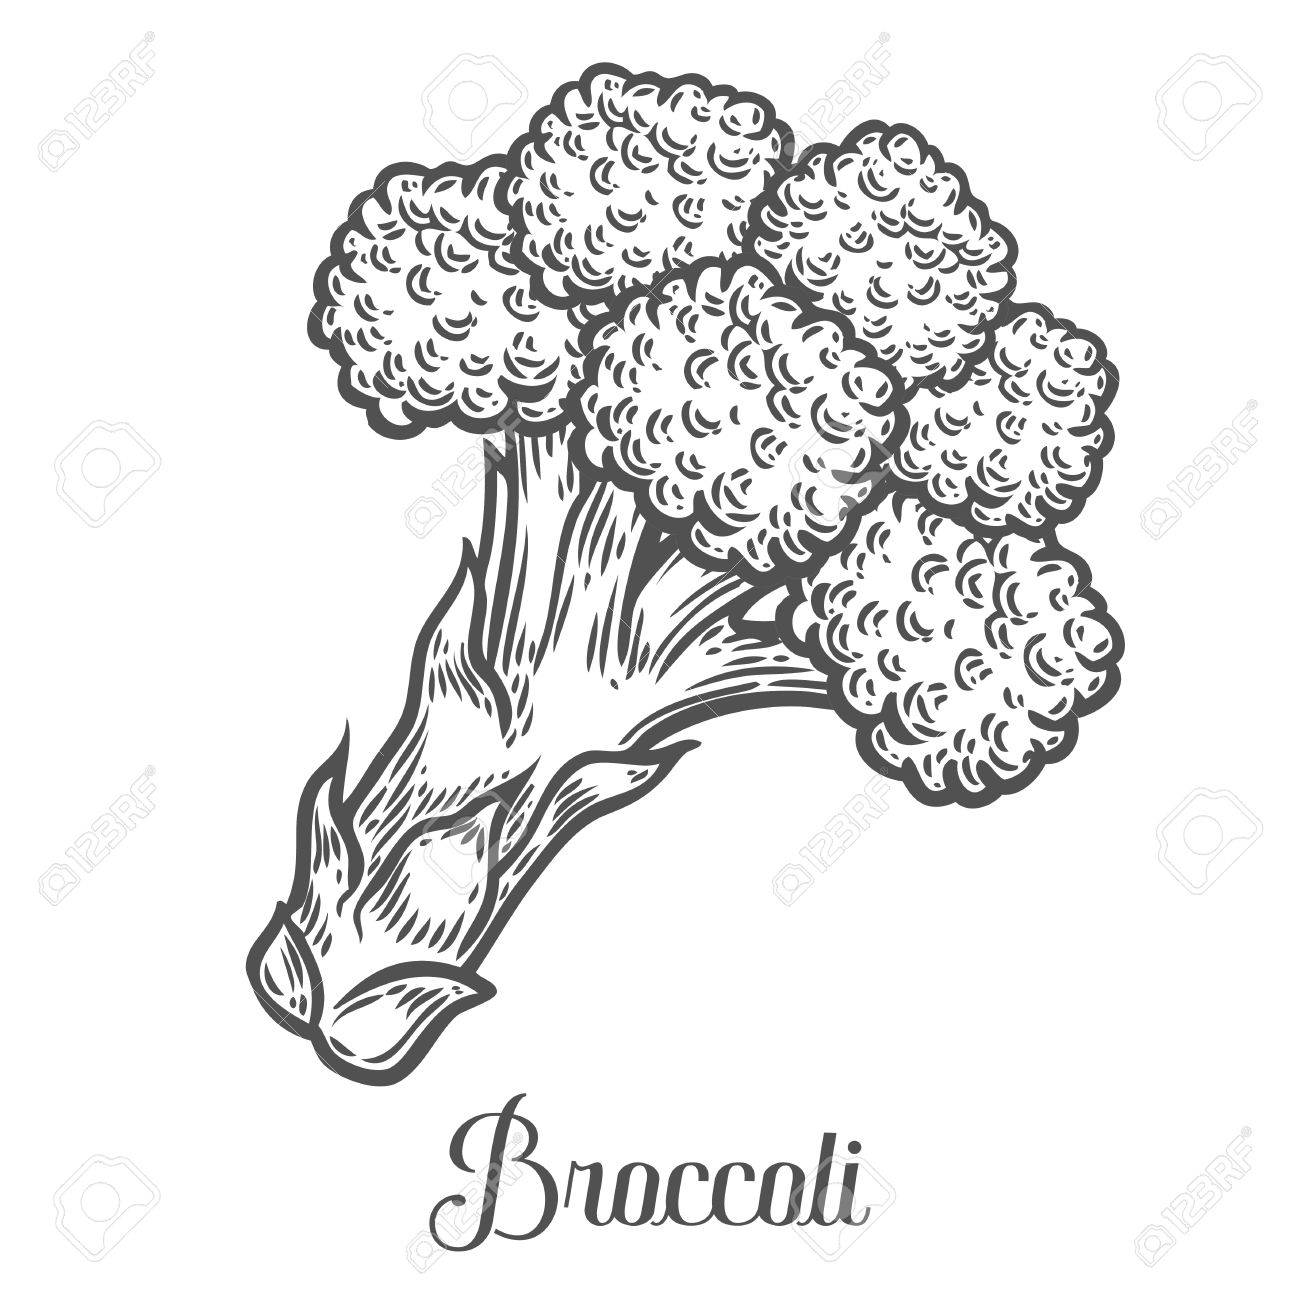 broccoli vector isolated on white background broccoli food royalty free cliparts vectors and stock illustration image 68335444 broccoli vector isolated on white background broccoli food